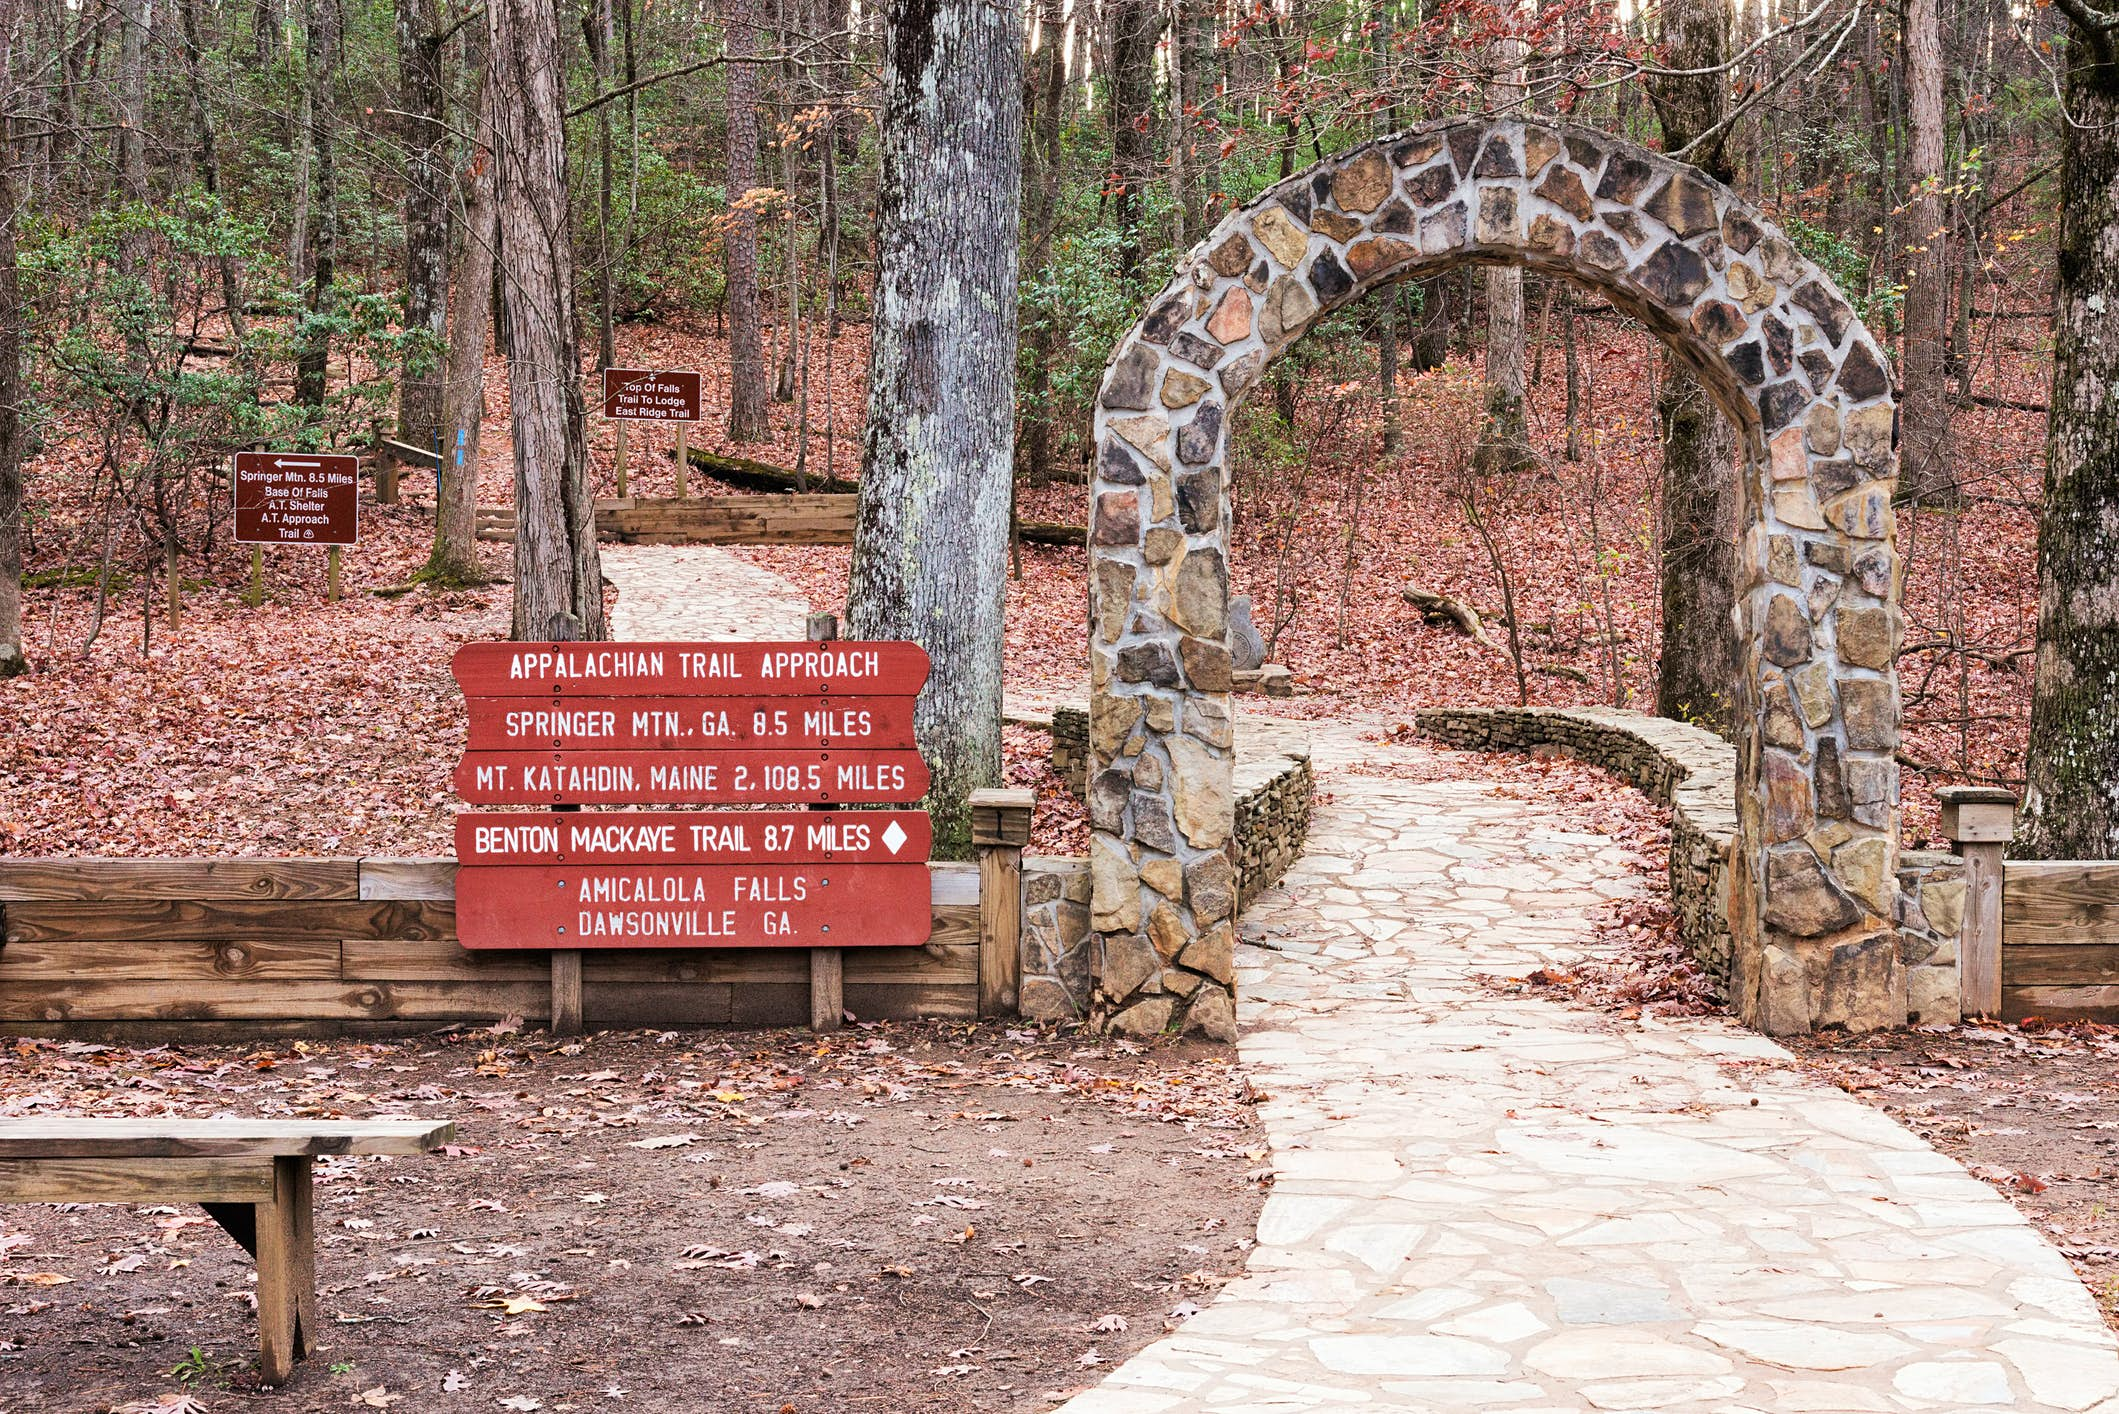 The famous stone arch at Amicalola Falls State Park marks the start of the Appalachian Trail approach segment that takes hikers to the southern terminus at Springer Mountain